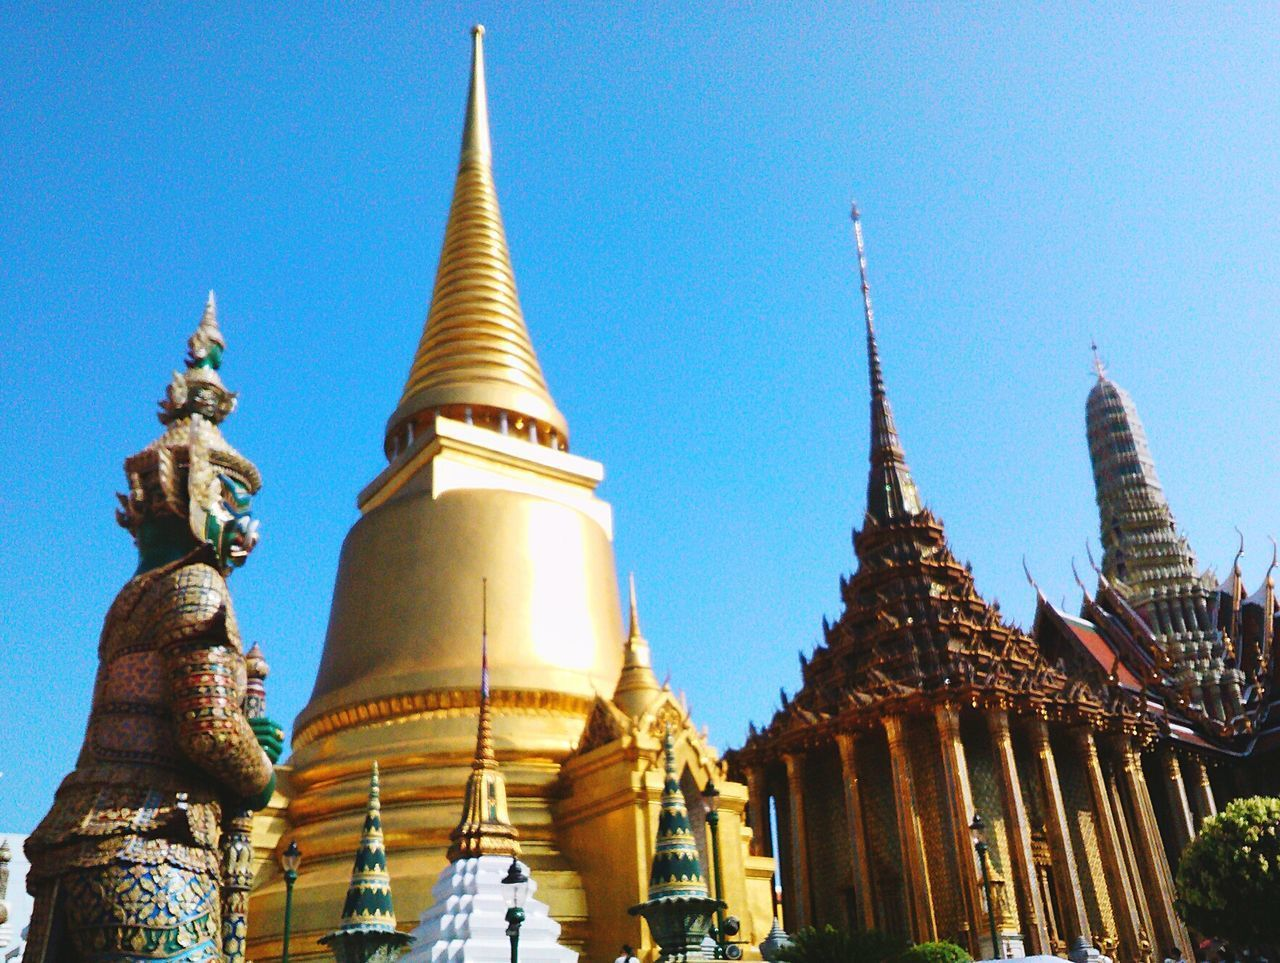 Temple Of Thailand EyeEm Selects Thai Temple Temple Thailand Thai ASIA Asean Thai Culture Culture Giant Hug Pagoda Gold Pagoda Gold Place Of Worship Place Important Place Amazing Thailand Protect Worship Religion Siam Building Thai Building Thai Architect